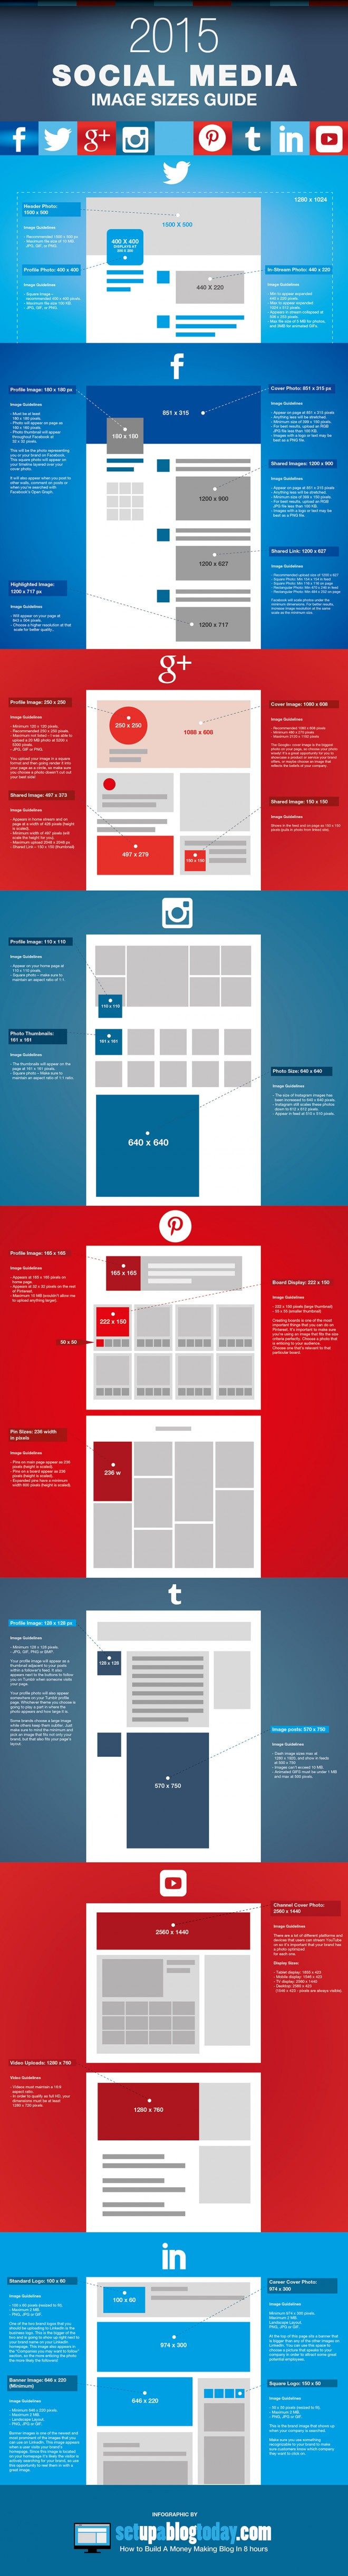 Social Media Image Sizes guide 2015